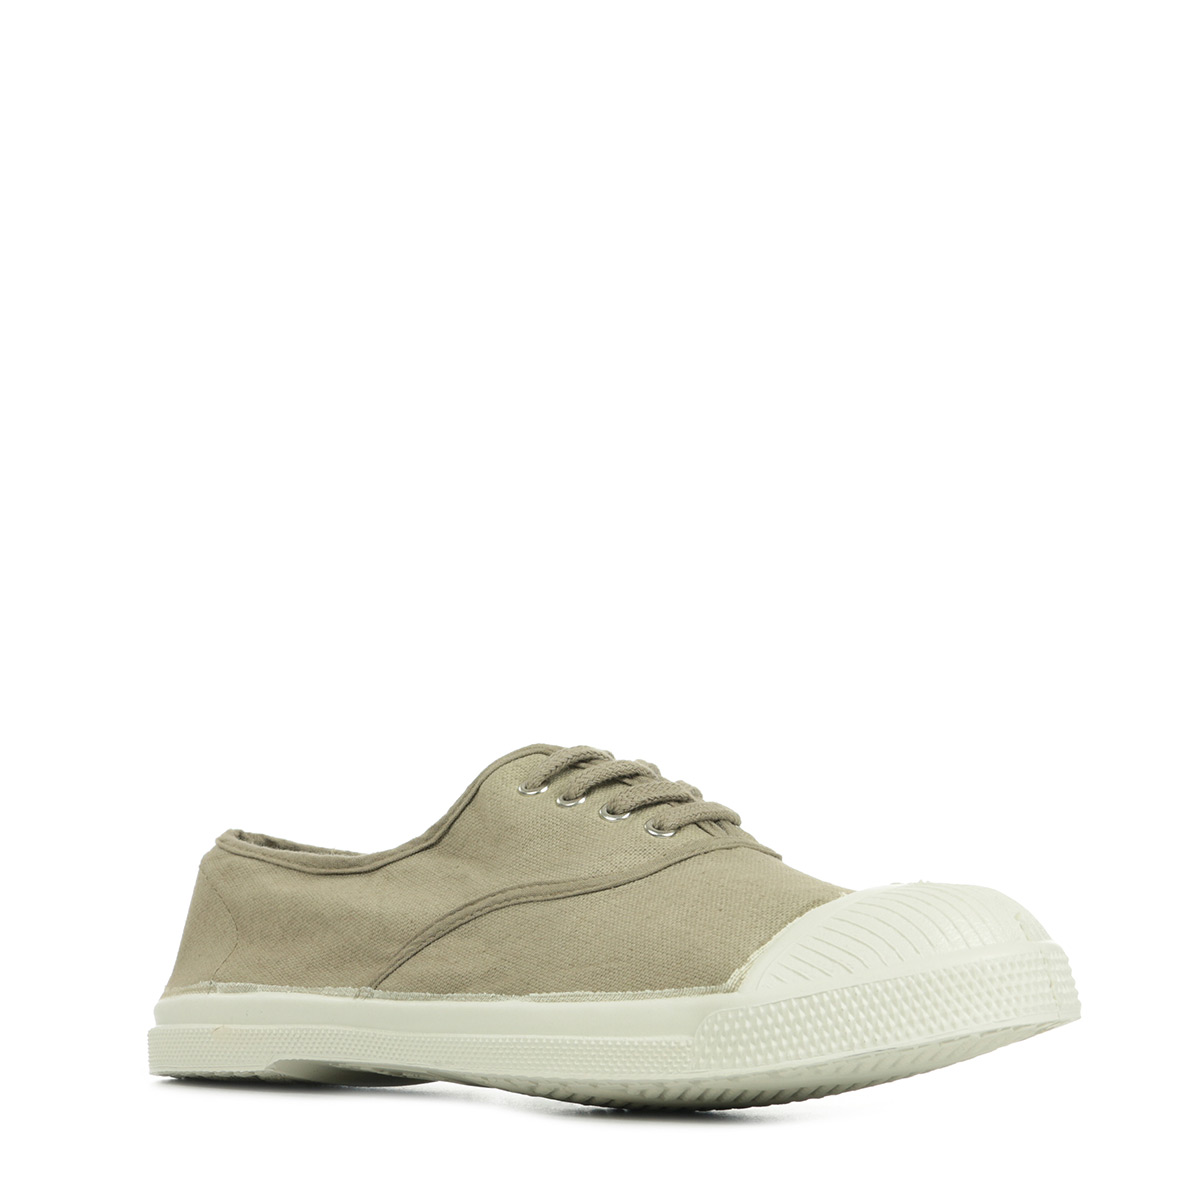 Bensimon Tennis Lacets Coquille F15004C159105, Baskets mode femme